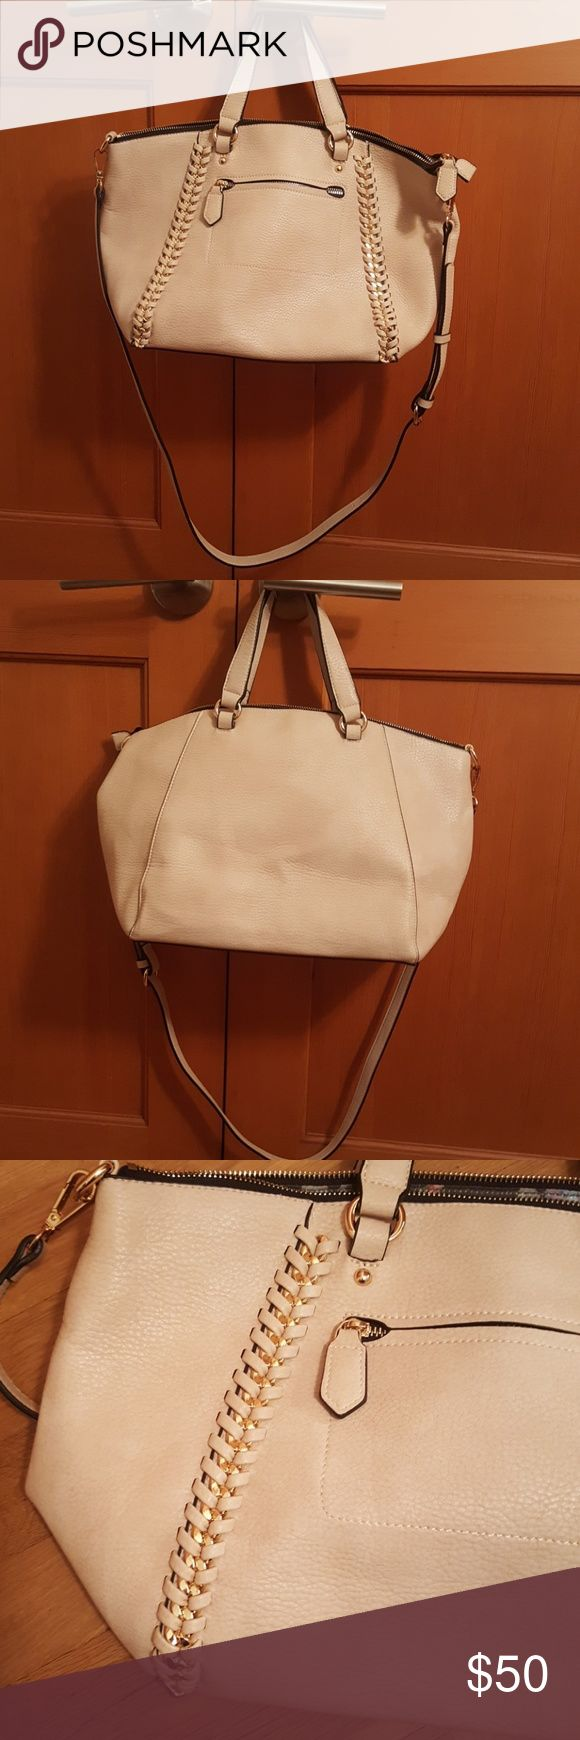 Gabriella Rocha medium beige satchel Gabriella Rocha medium beige satchel with gold chain decal and gold hardware. Comes with removable strap to convert to a shoulder or cross body bag. This item is brand new without tags and has never been worn before. In perfect condition! Handle and zipper lining is black. Gabriella Rocha Bags Satchels